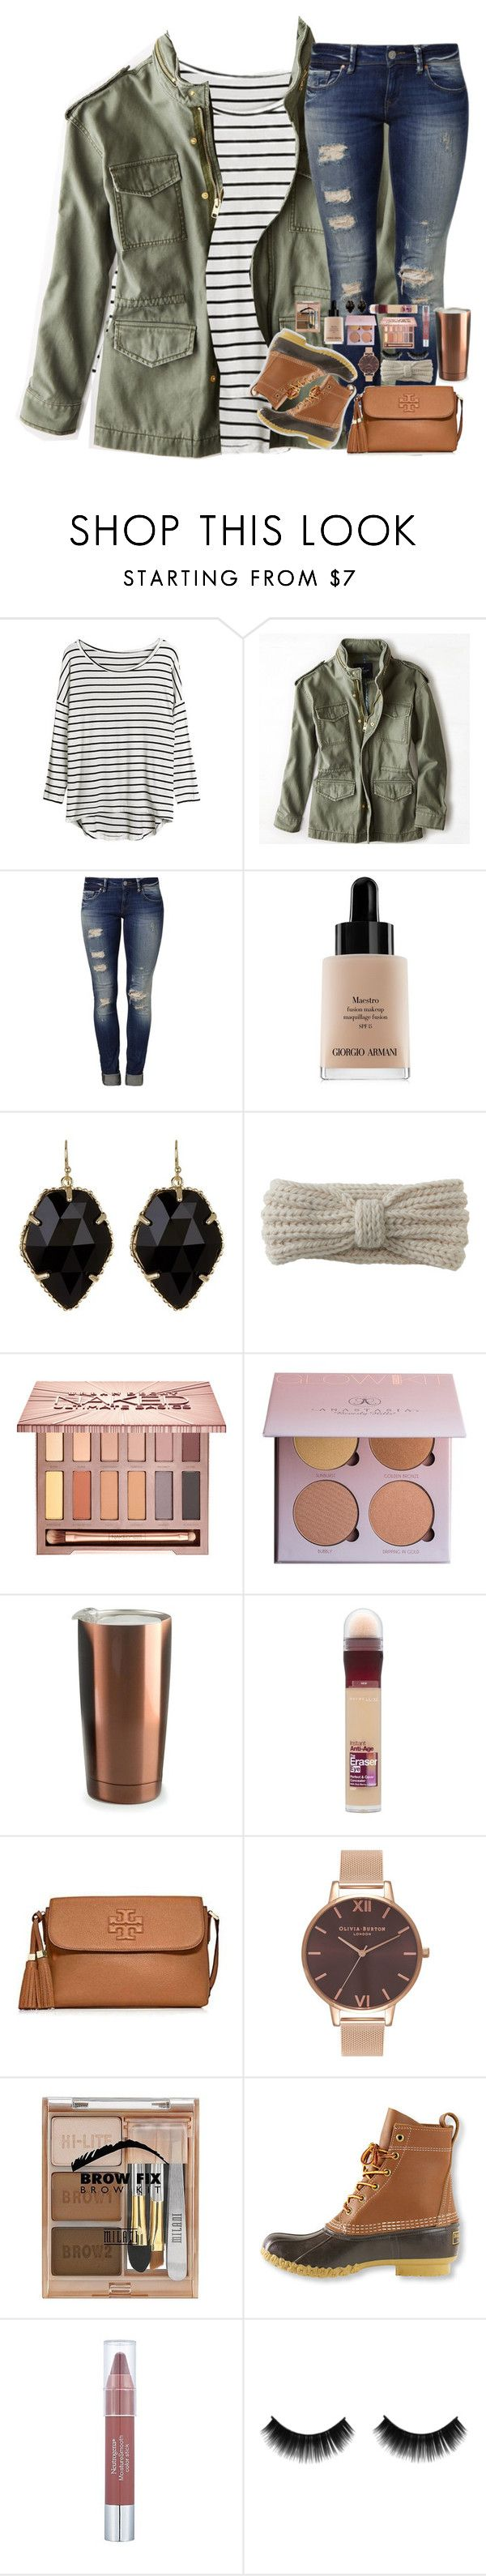 """""""yassssss """" by mehanahan ❤ liked on Polyvore featuring American Eagle Outfitters, Mavi, Giorgio Armani, Kendra Scott, Aéropostale, Urban Decay, Anastasia Beverly Hills, Asobu, Maybelline and Tory Burch"""